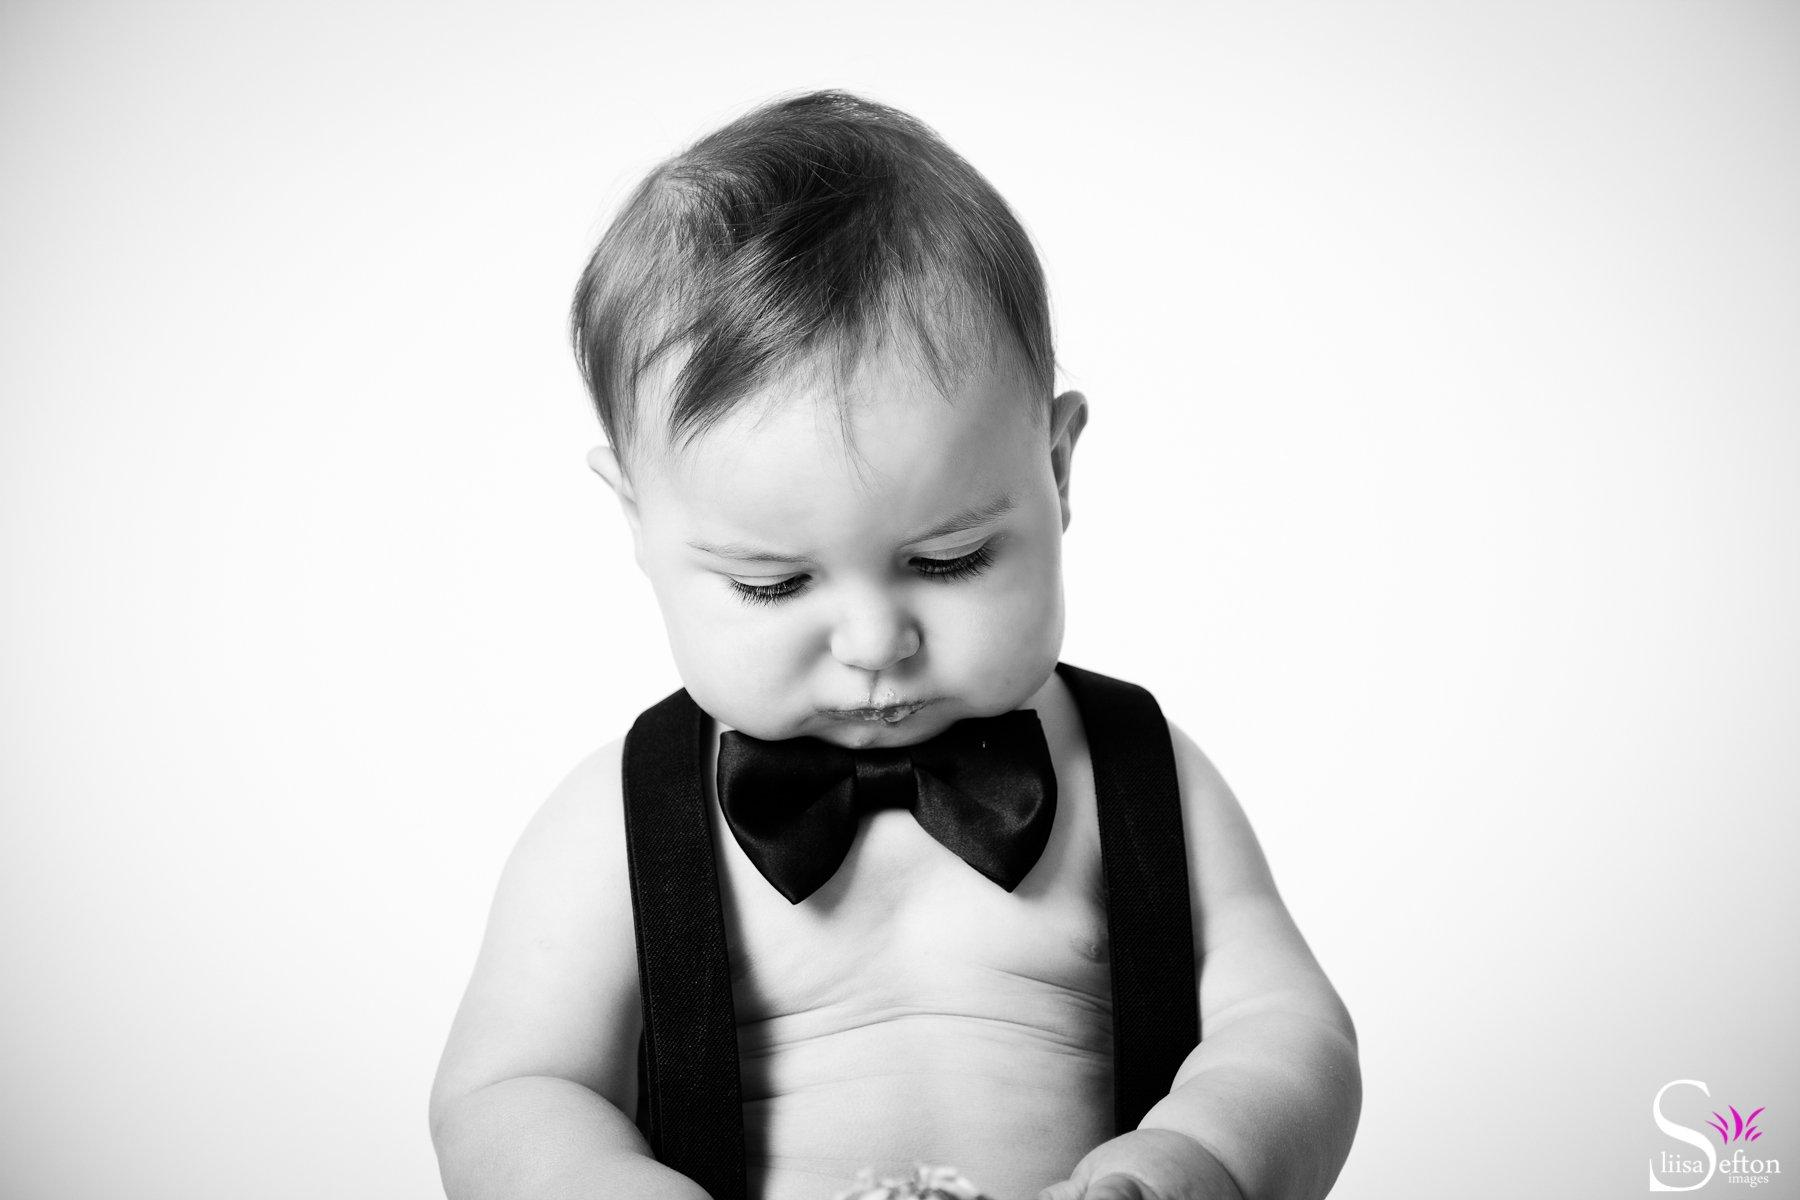 Absolutely Stunning, Black and White Photos of Babies. Must-see!